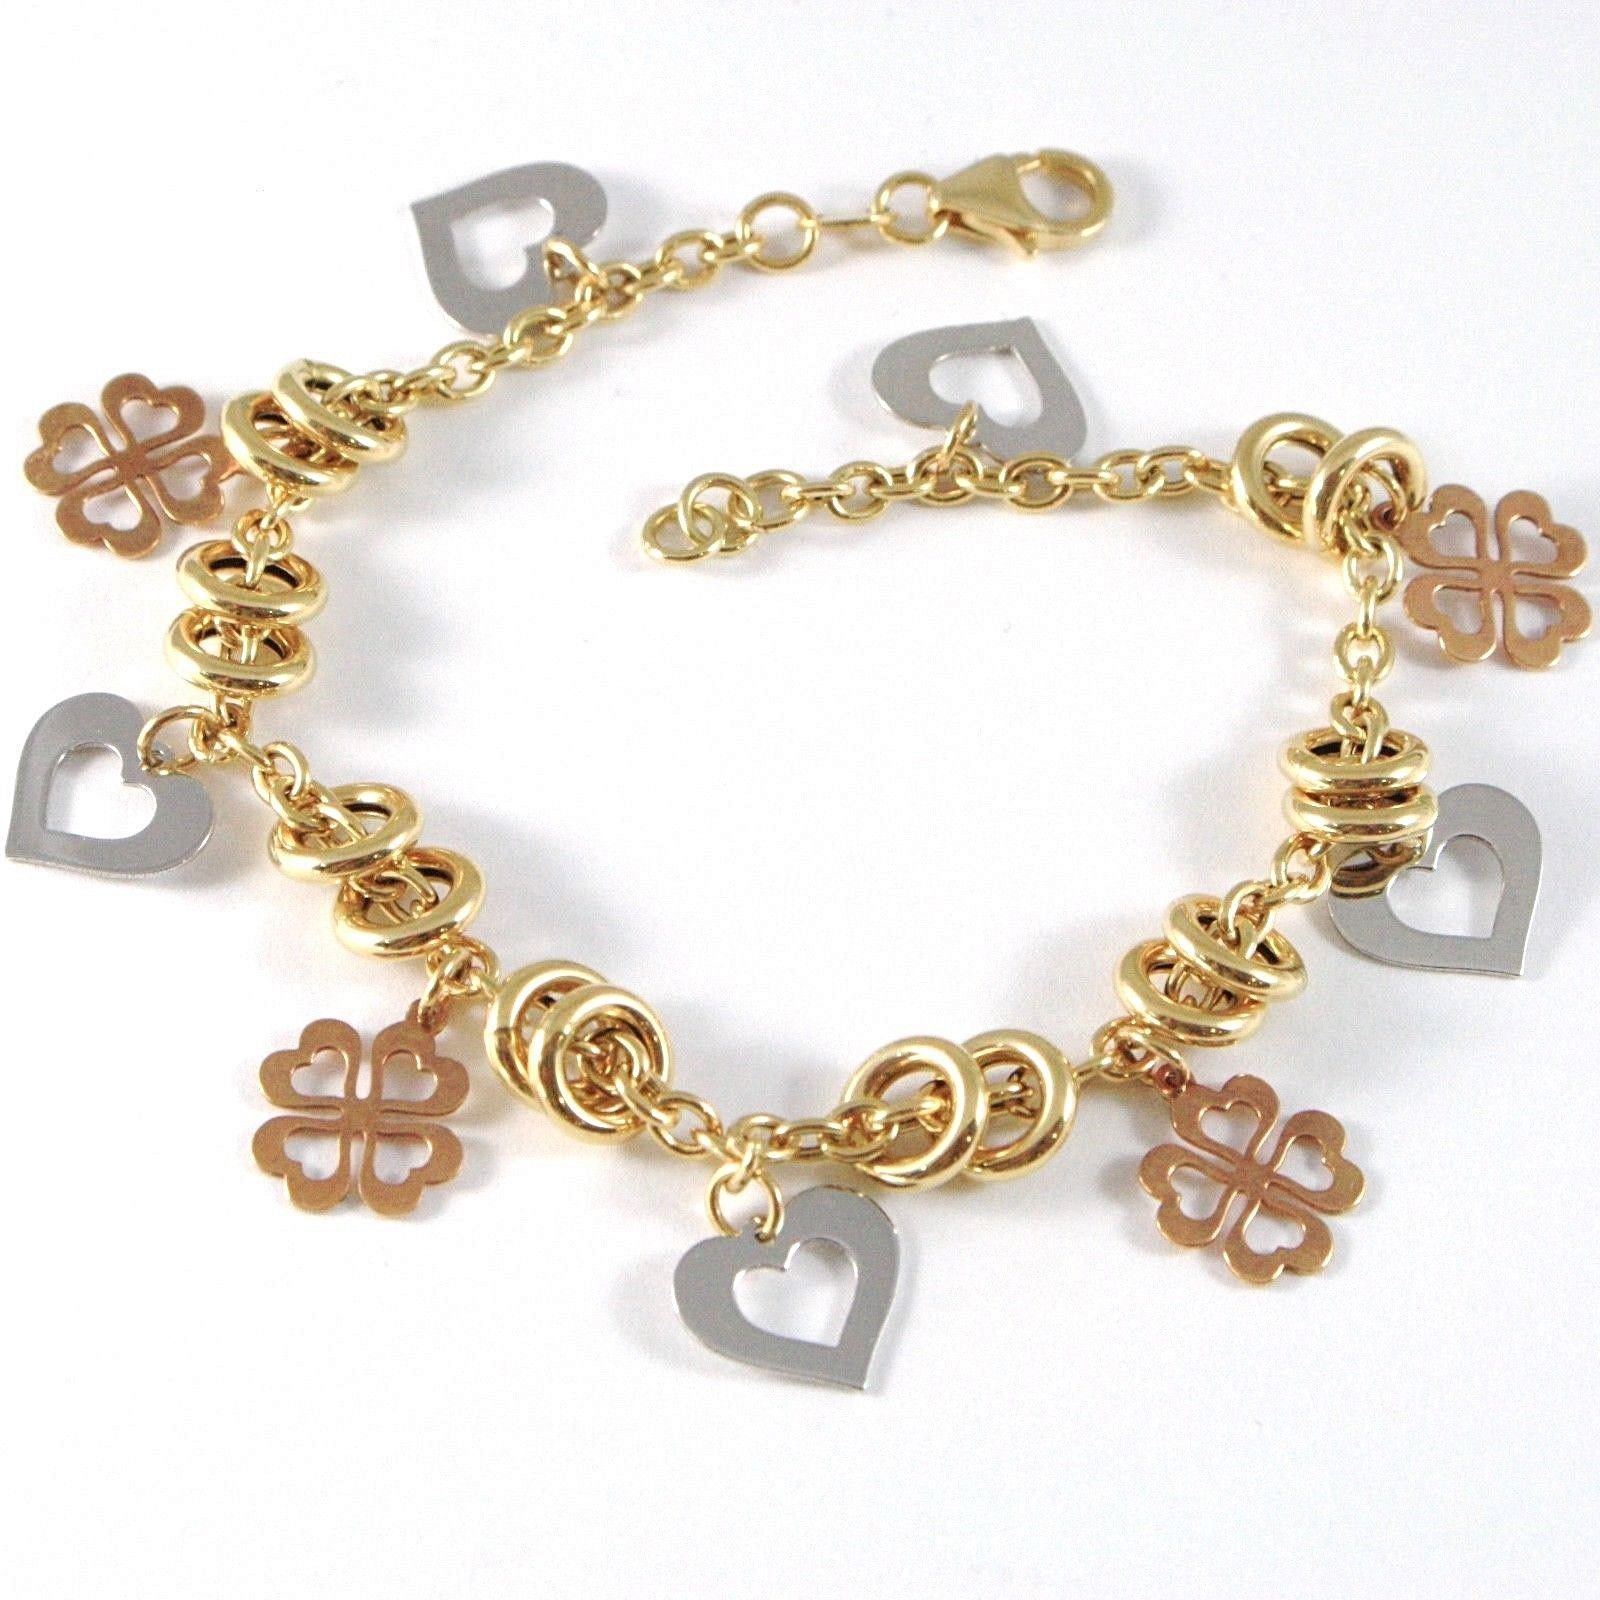 Gold Bracelet Yellow White Pink 18K 750, Circles, Four-Leaf Clover & Hearts, Cmd